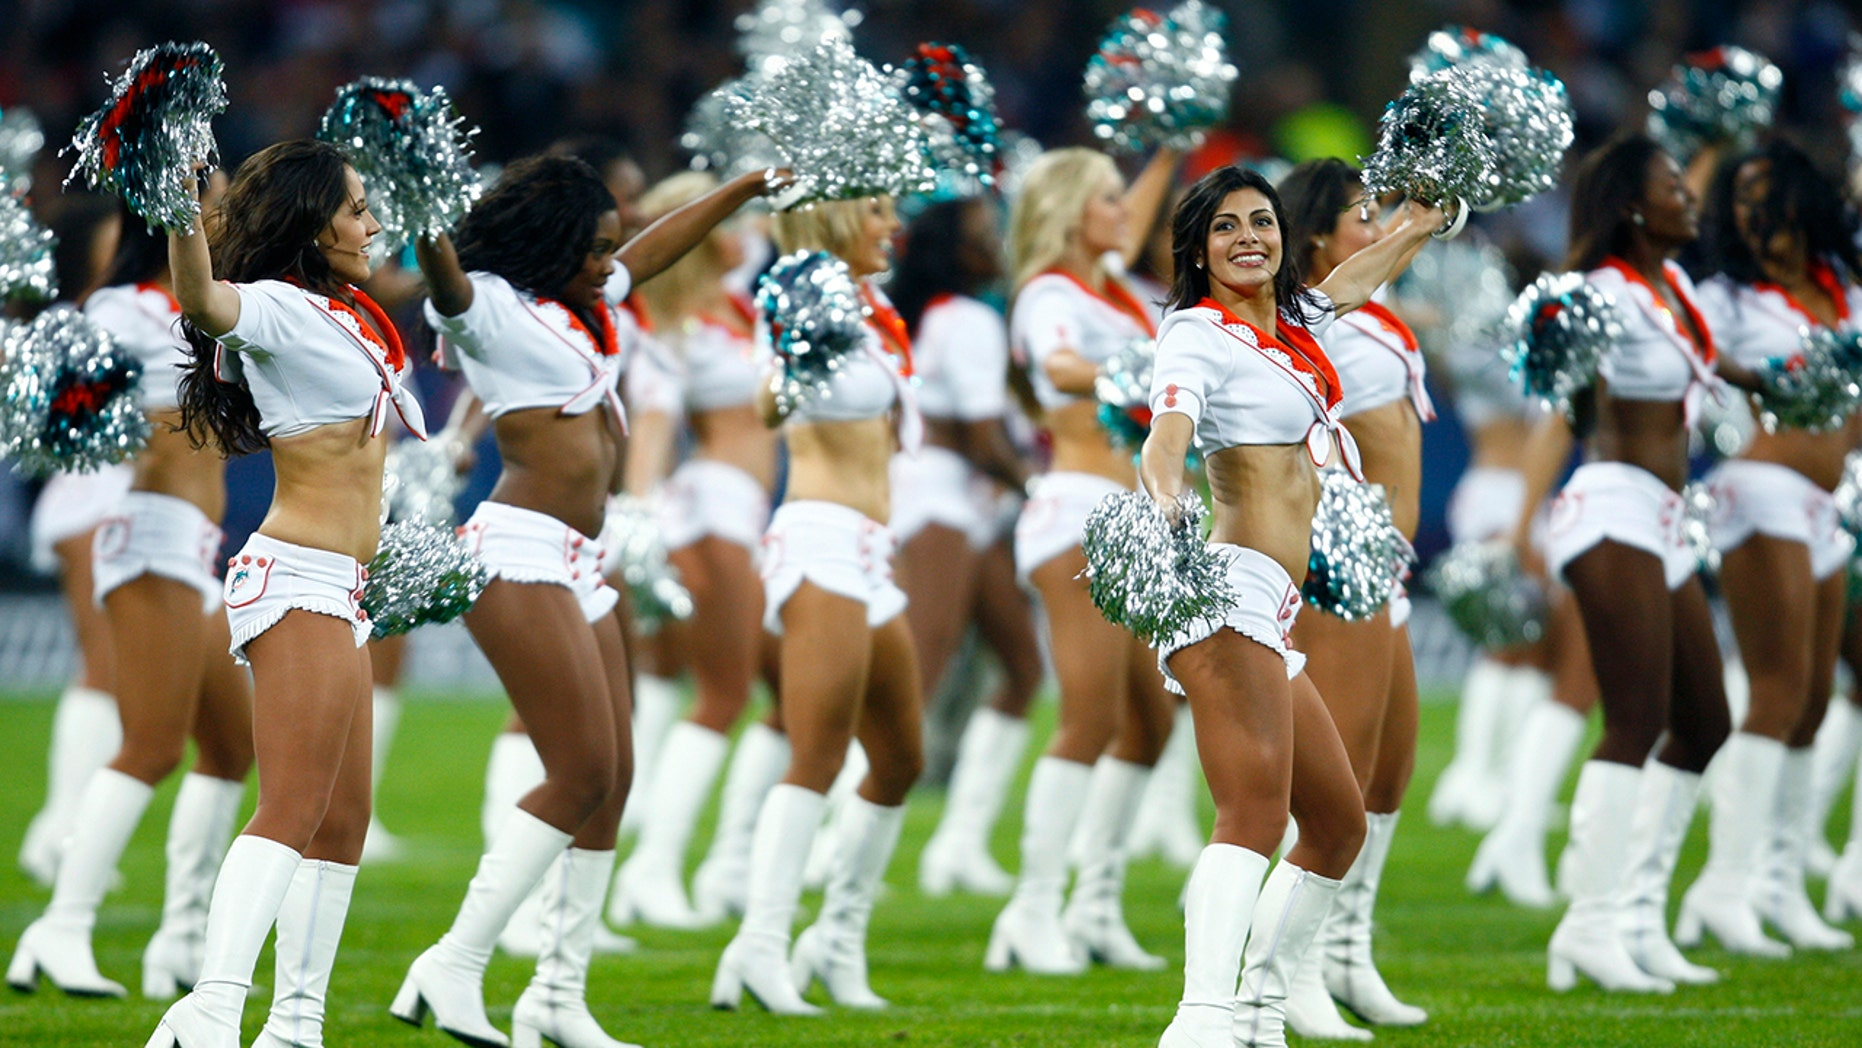 A former Miami Dolphins cheerleader filed a complaint against the team and the NFL on Thursday alleging that she was discriminated against because of her Christian beliefs.